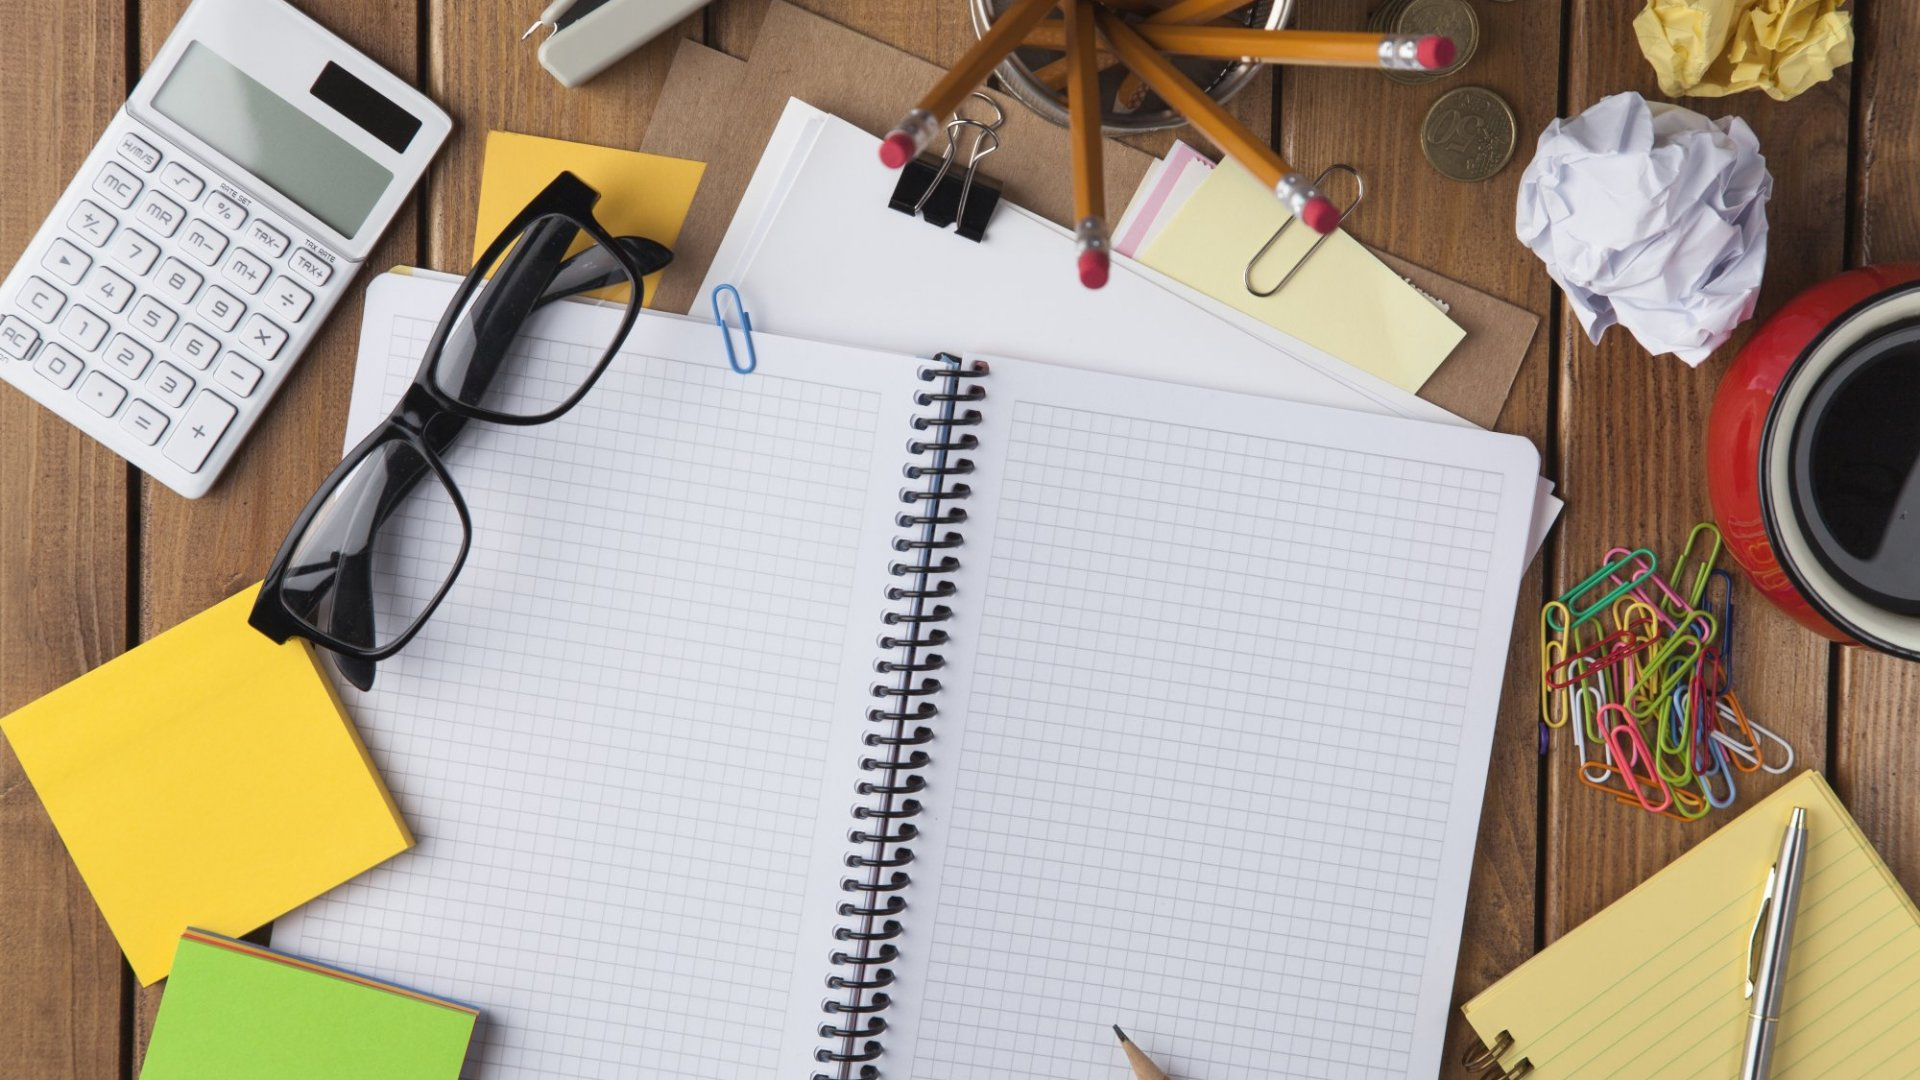 Leave That Messy Desk Alone. Studies Say There's a Benefit to Clutter